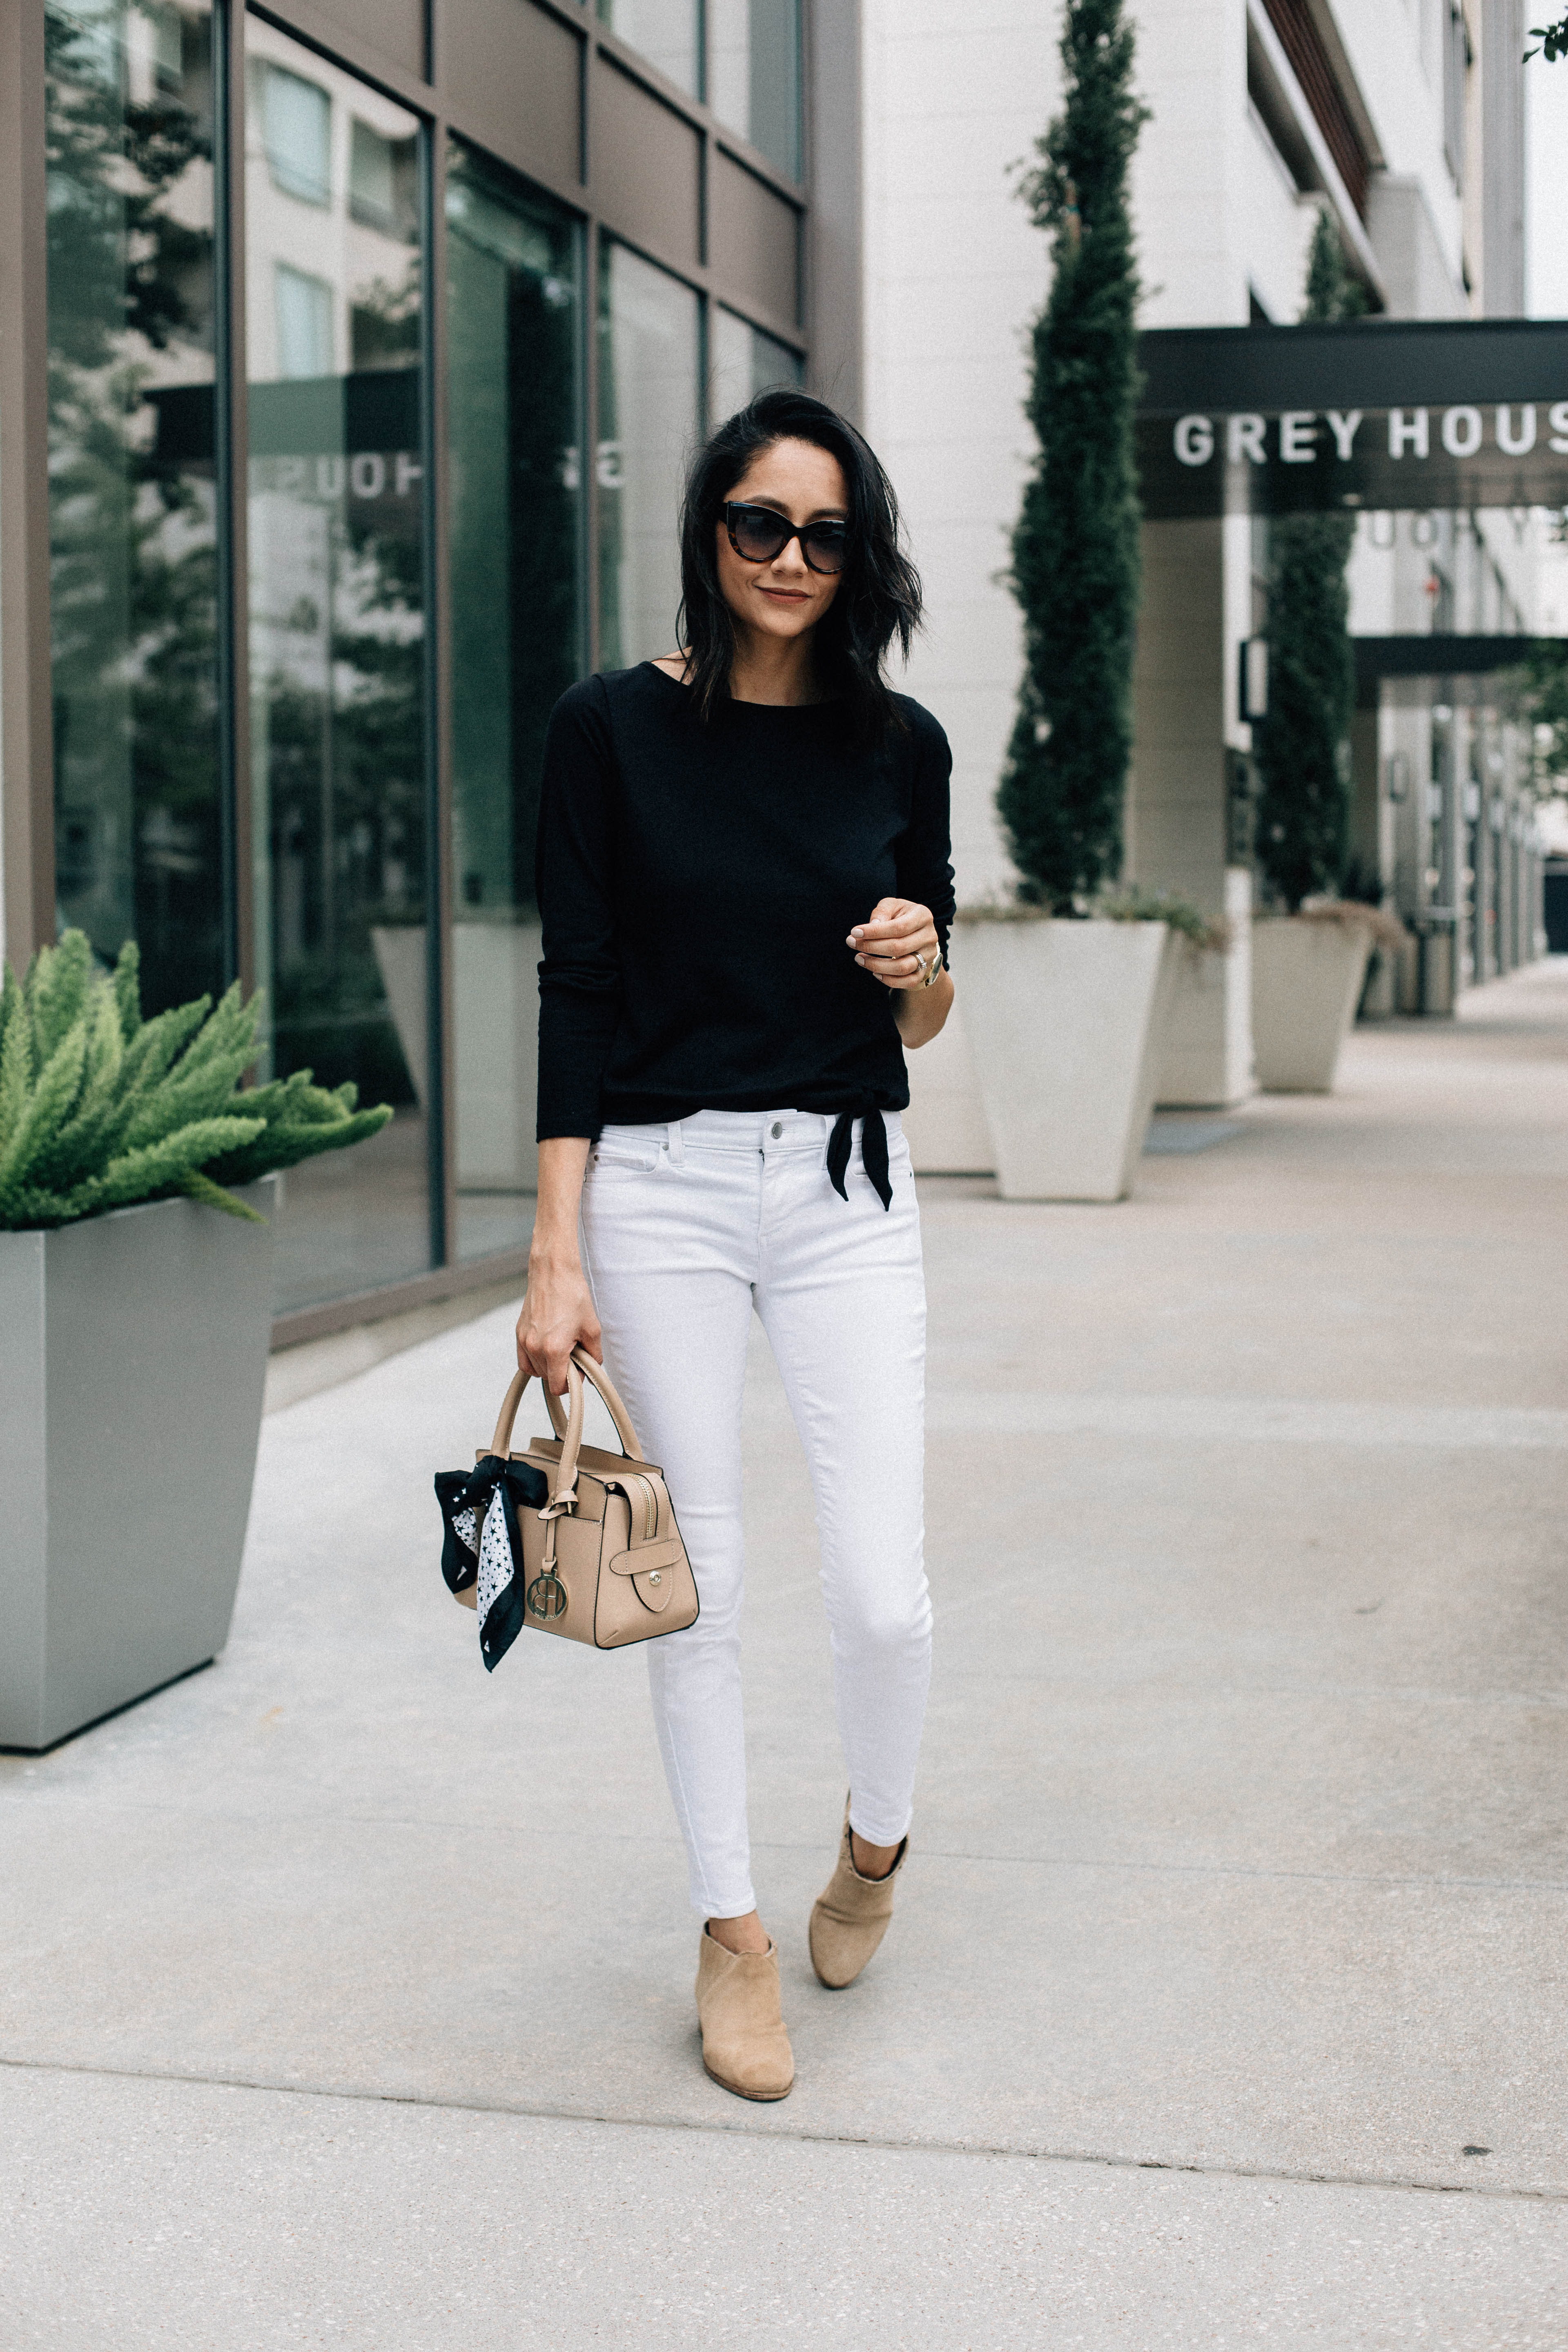 Lifestyle blogger Lilly Beltran of Daily Craving in a casual look wearing white jeans and a black tee